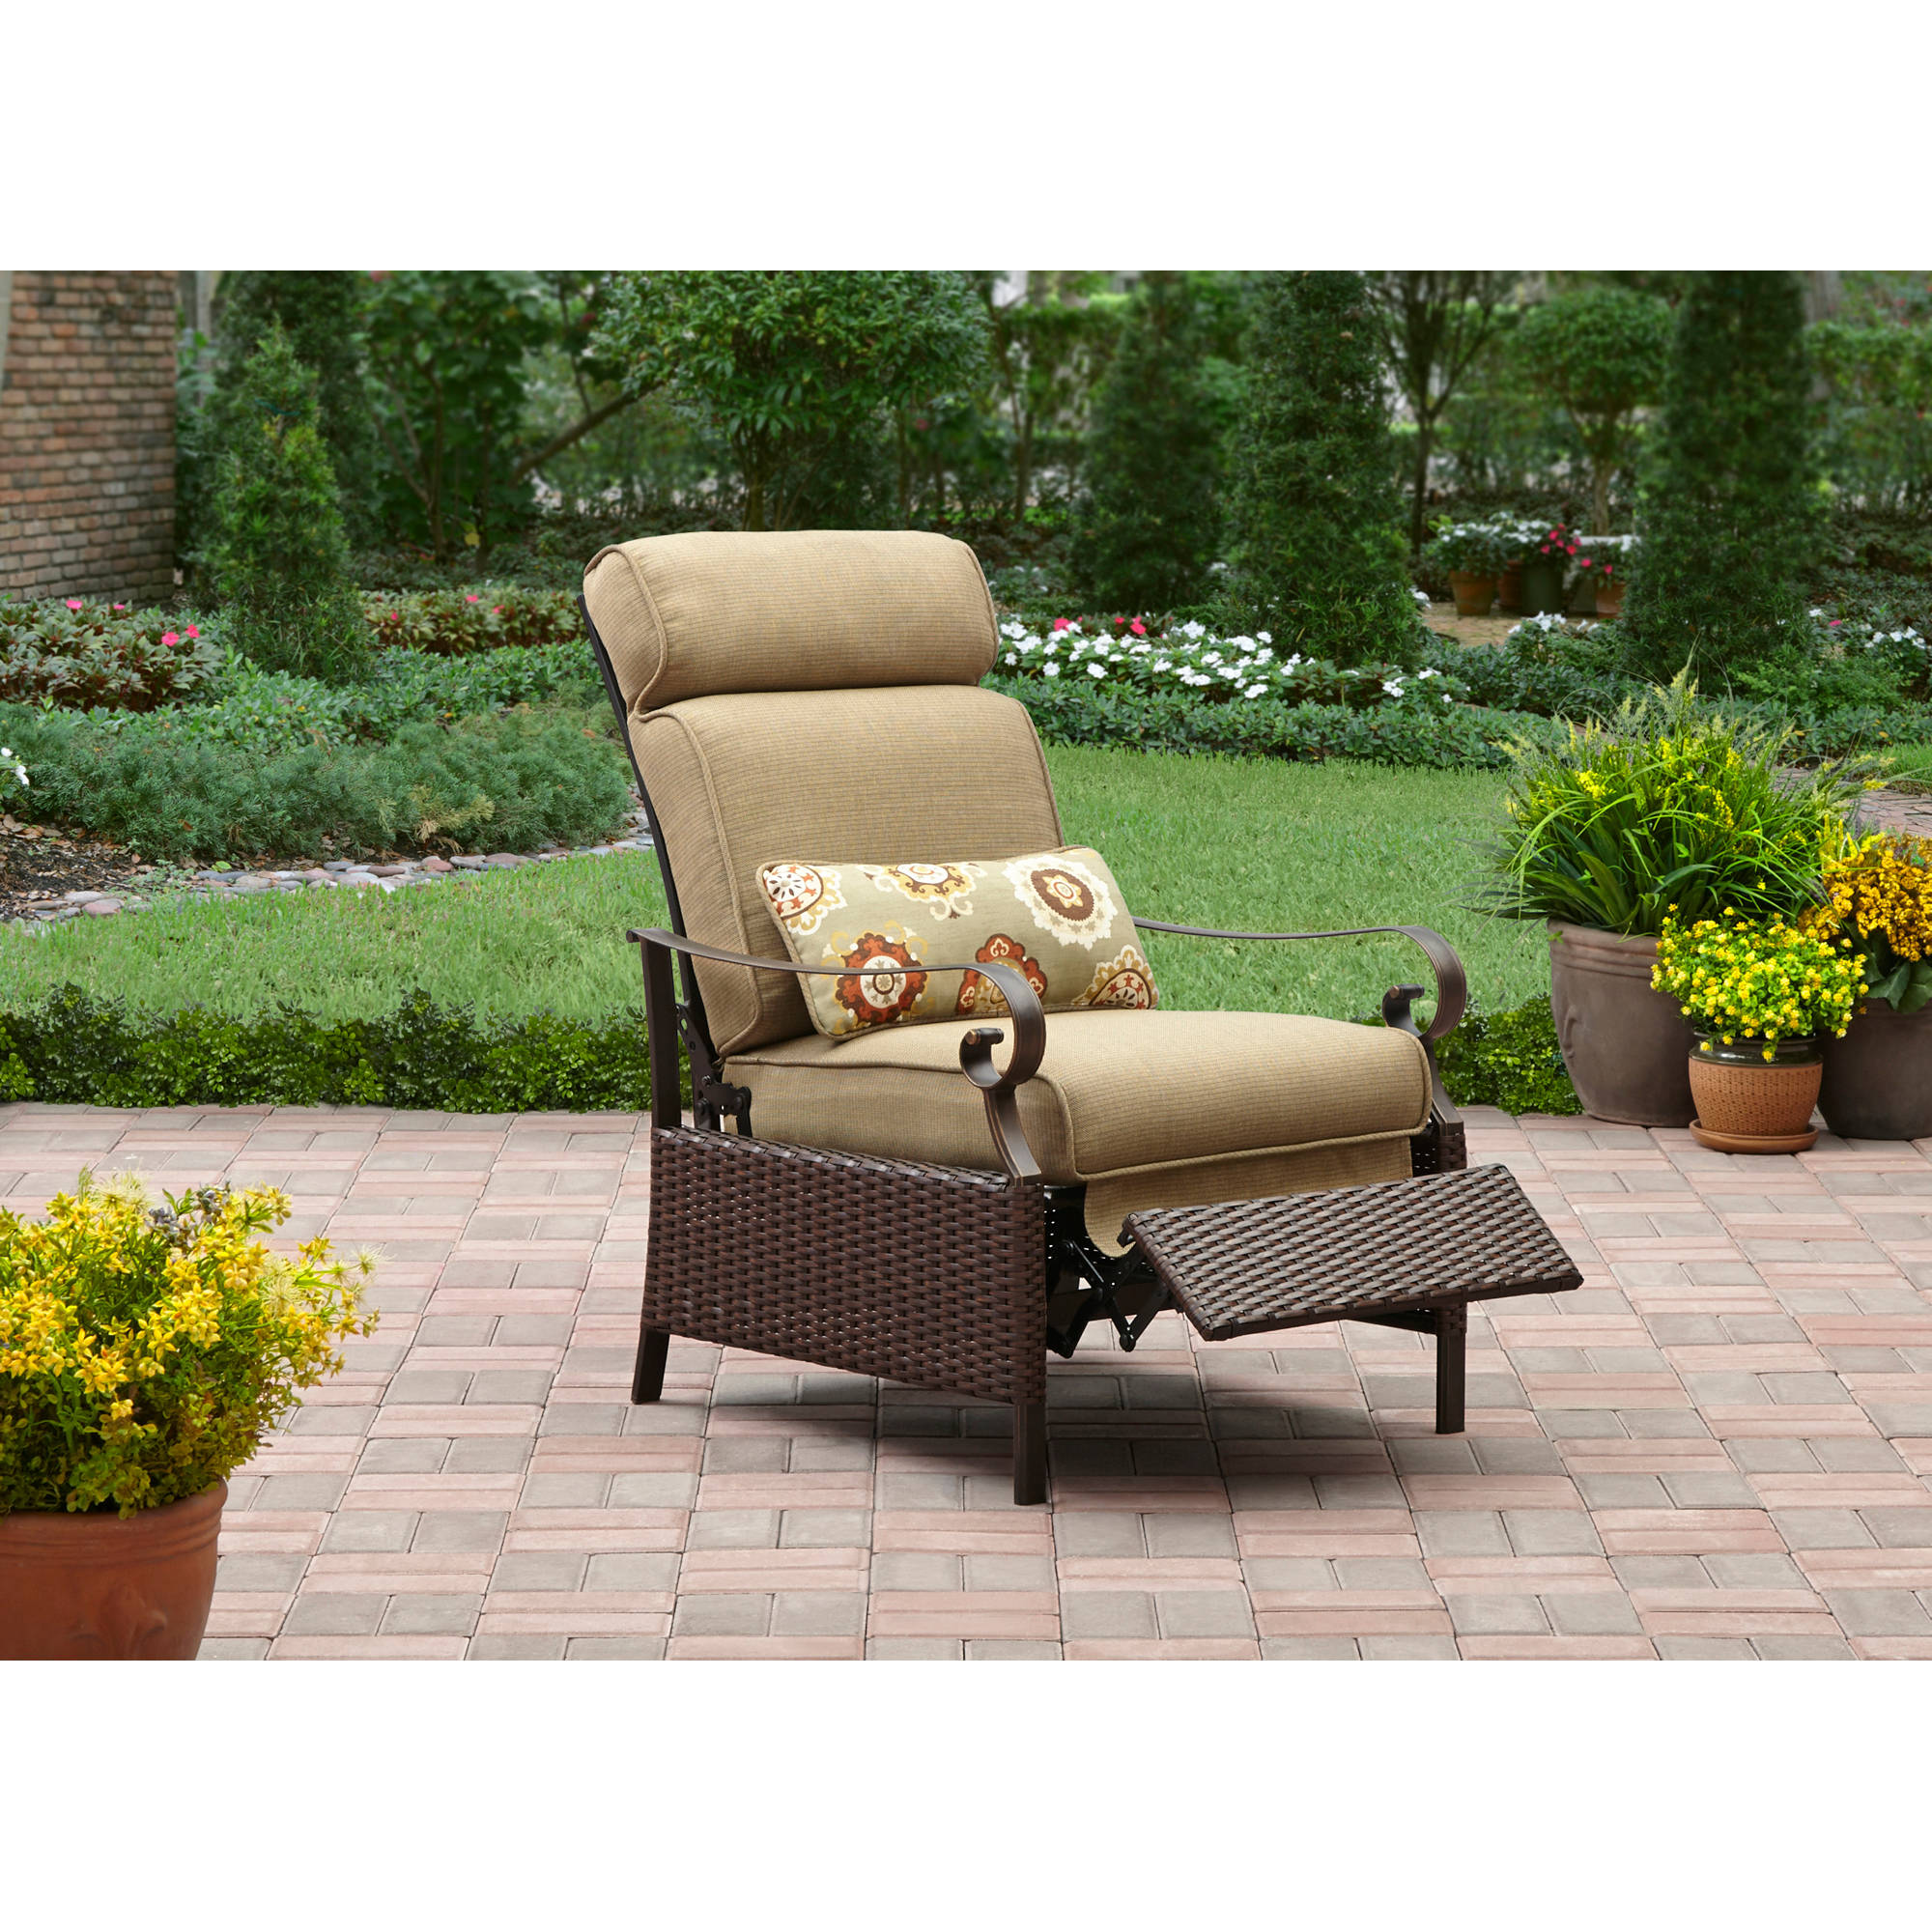 Better Homes and Gardens Riverwood Recliner Tan Walmartcom